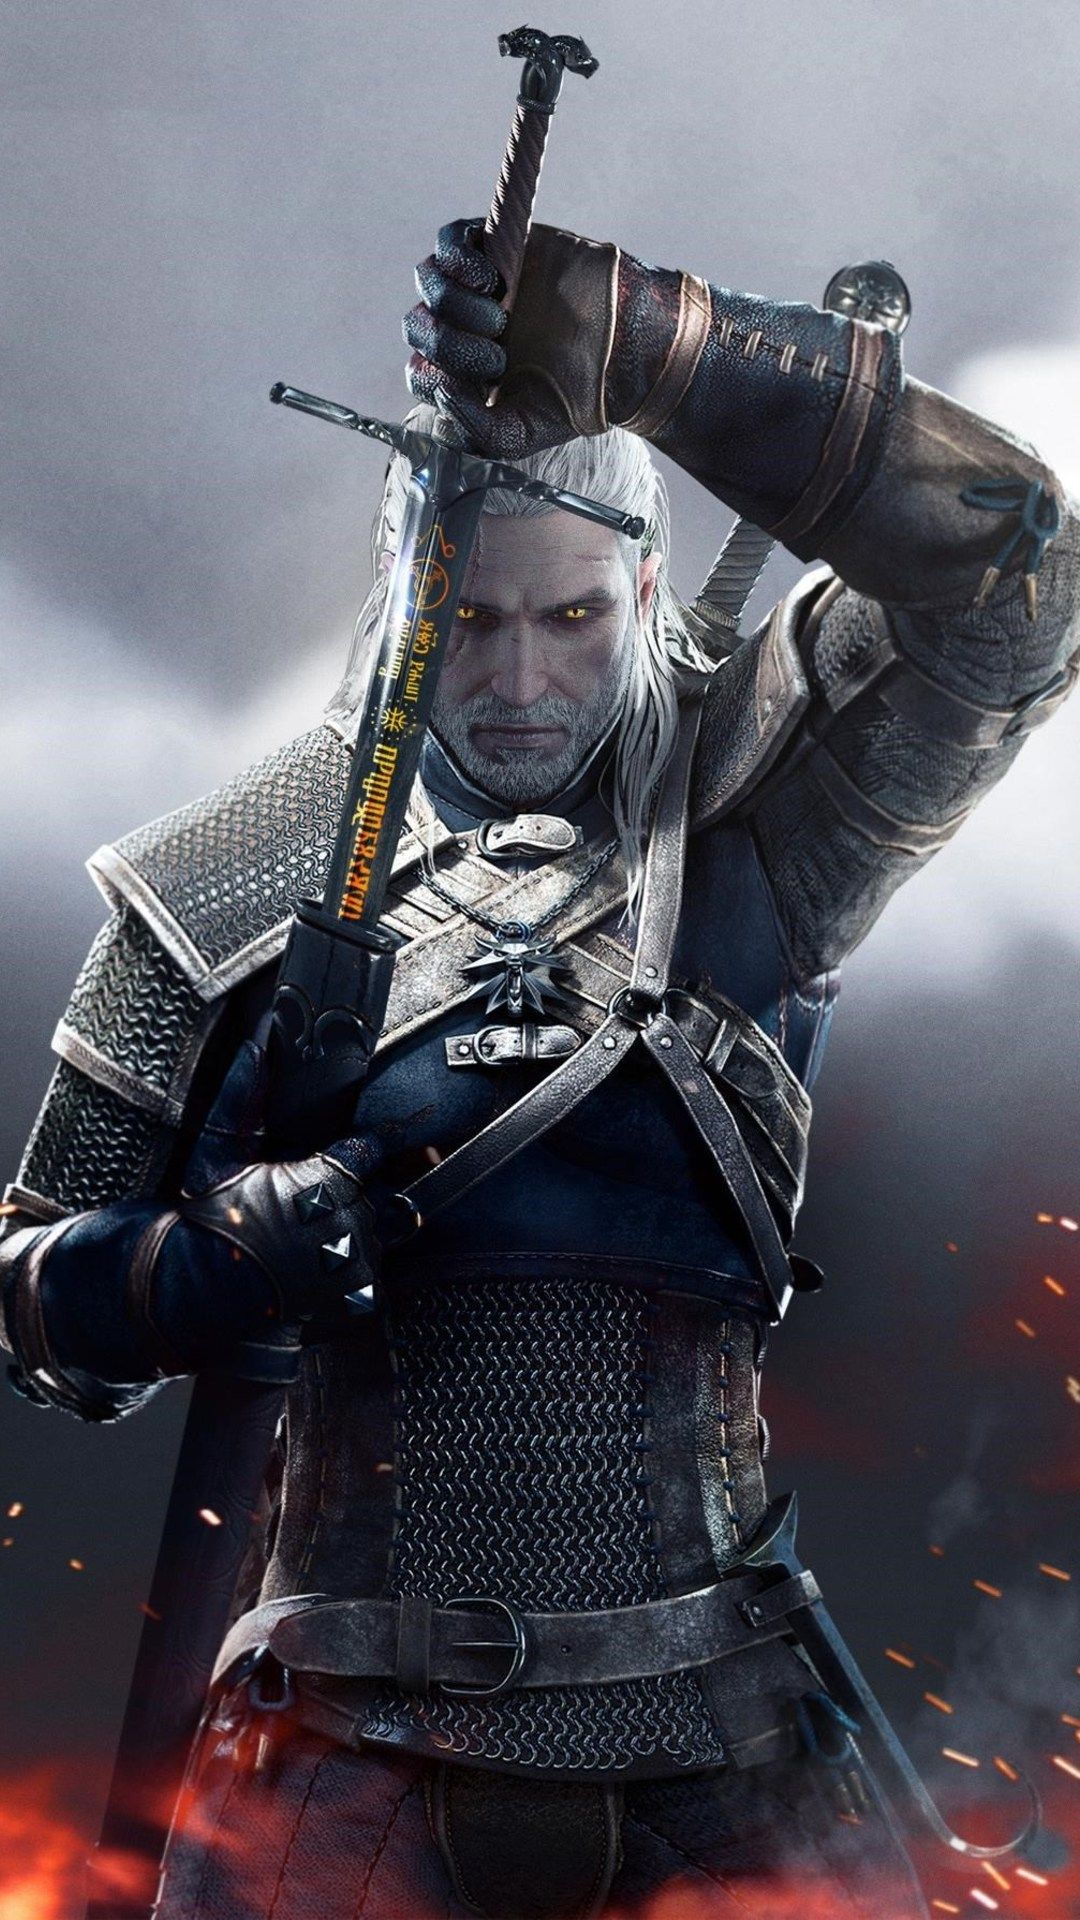 The Witcher 3 Wallpapers Hupages Download Iphone Wallpapers The Witcher Game The Witcher Witcher Tattoo